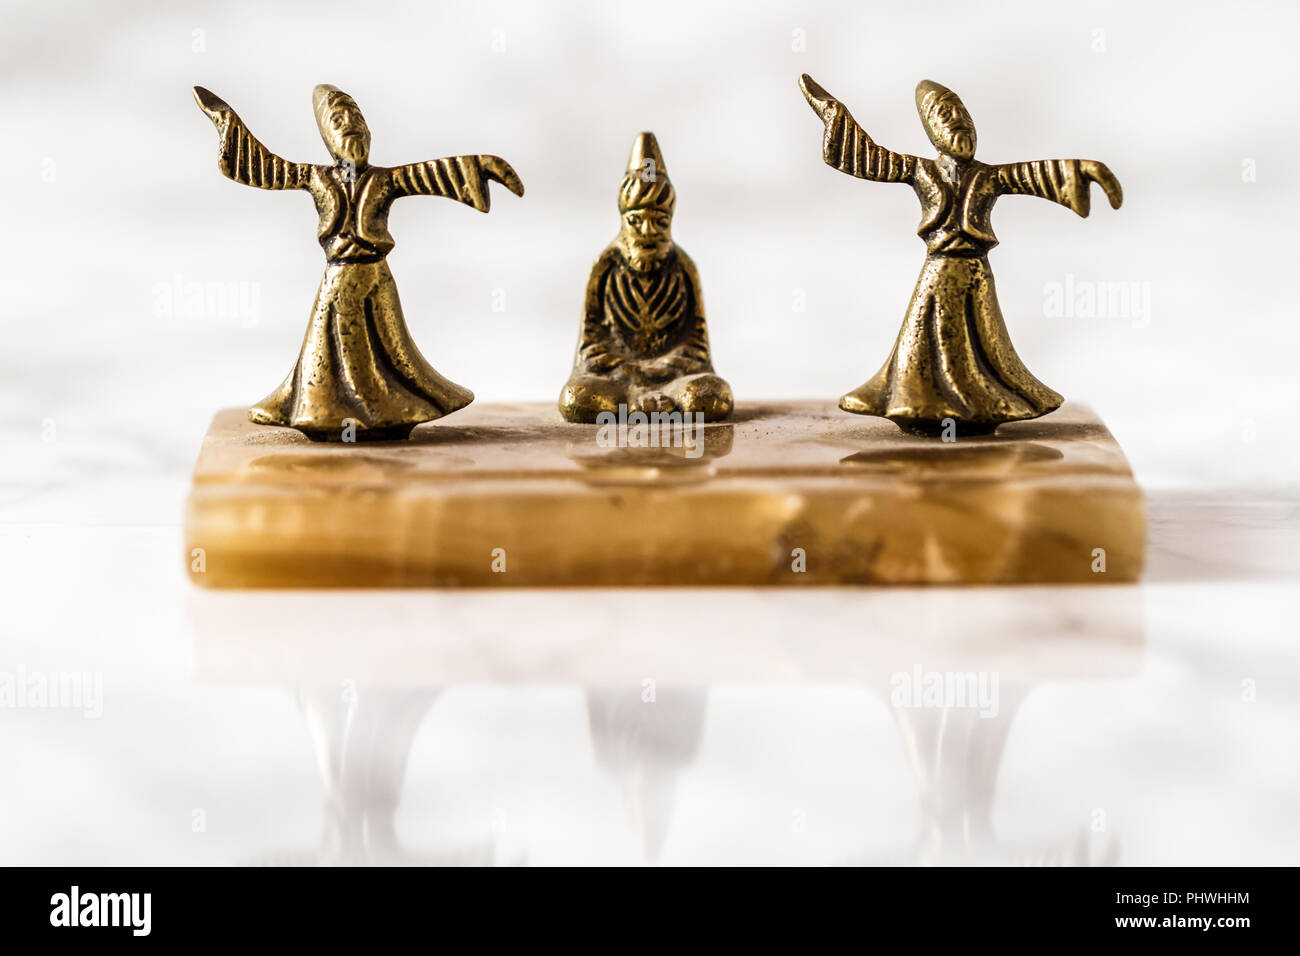 Whirling dervish bronze figurines with marble pedestal - Stock Image